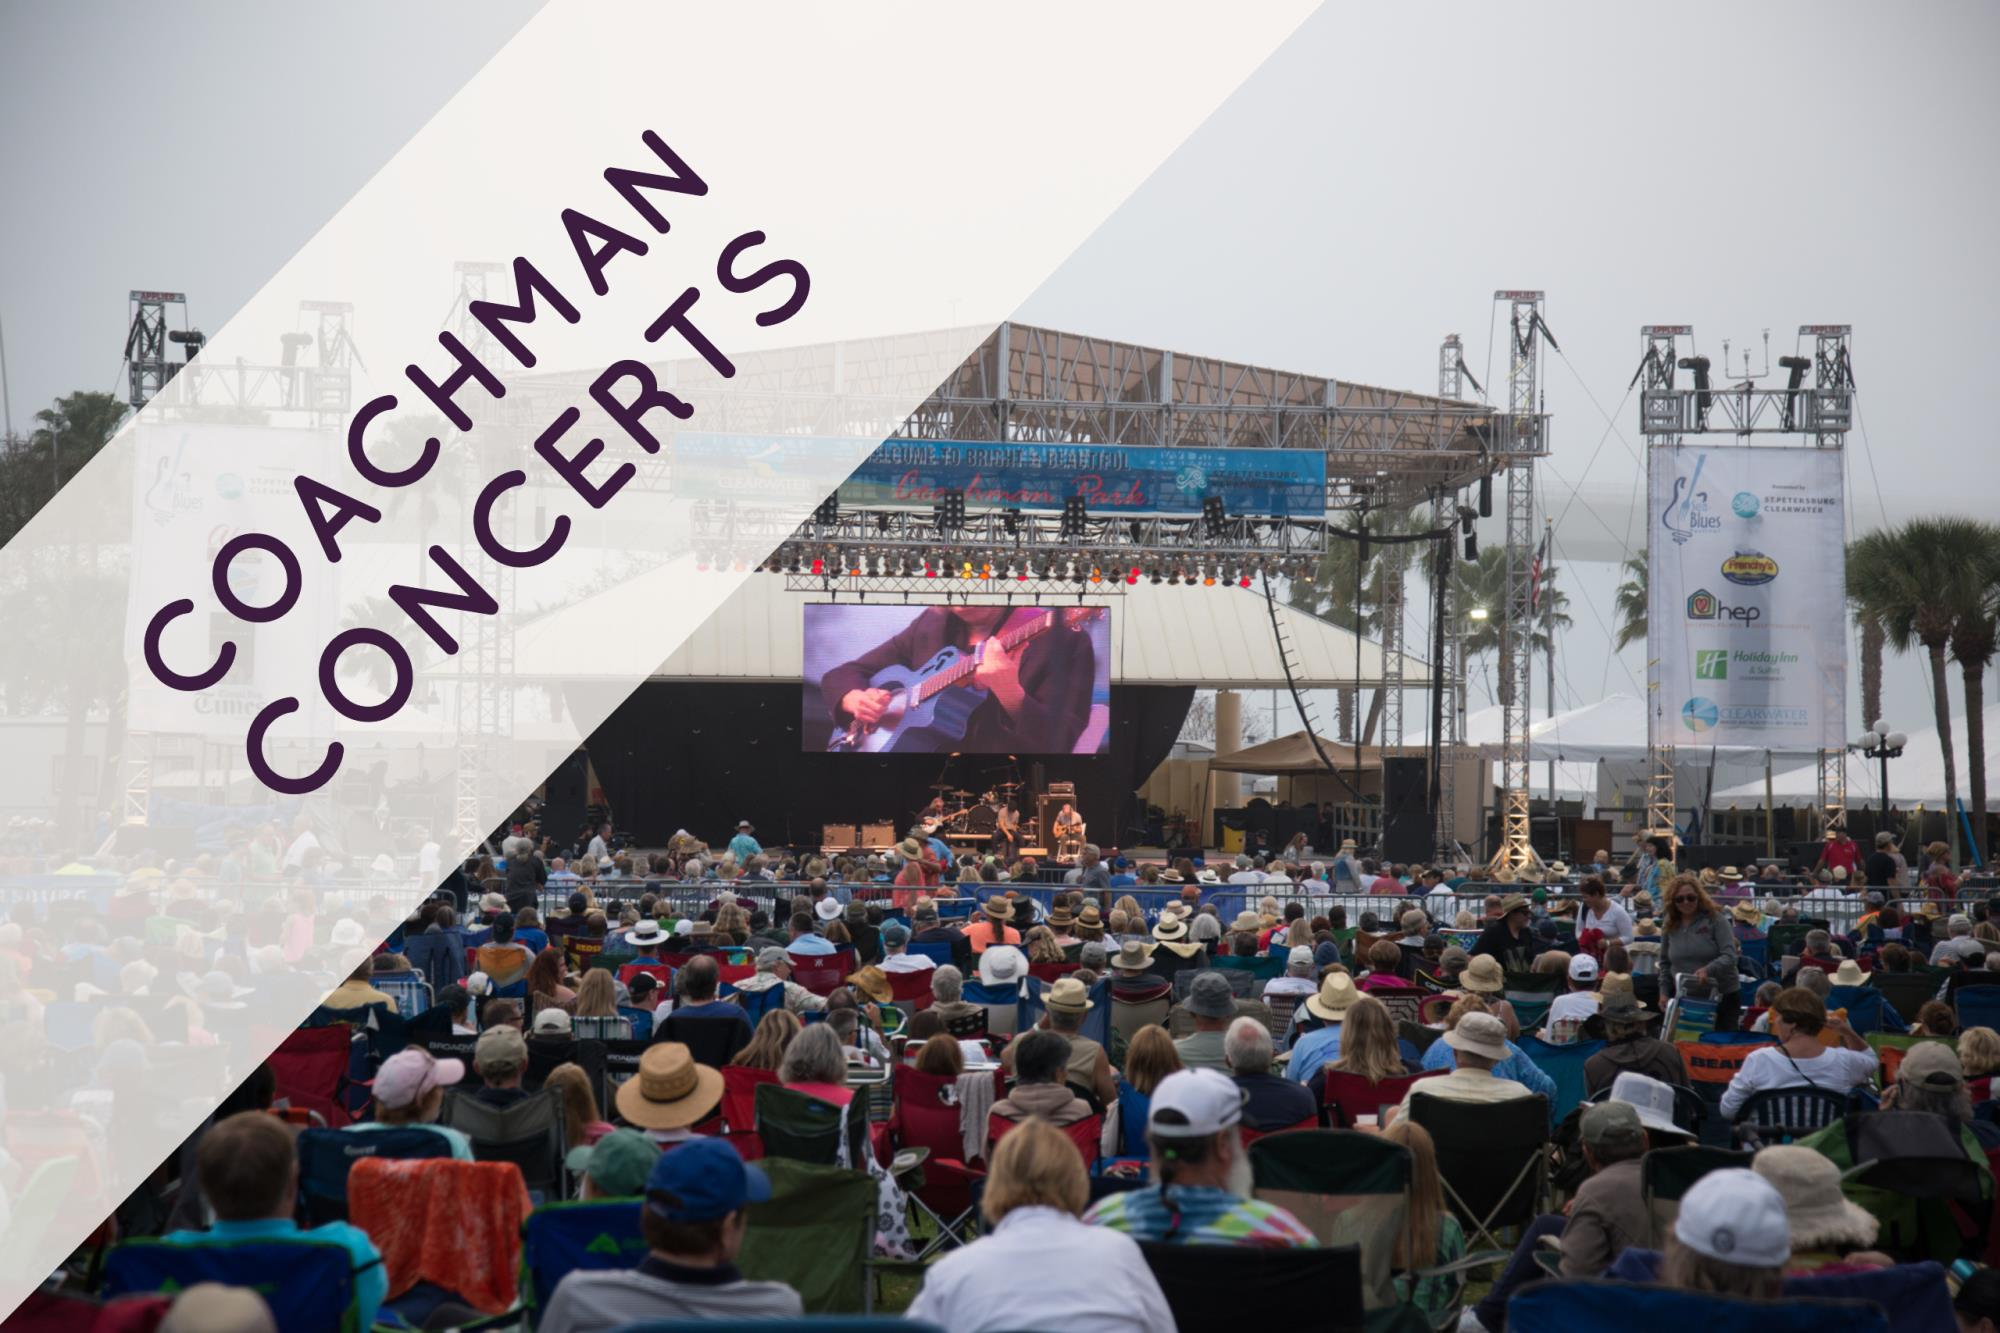 Image link to Coachman Concerts